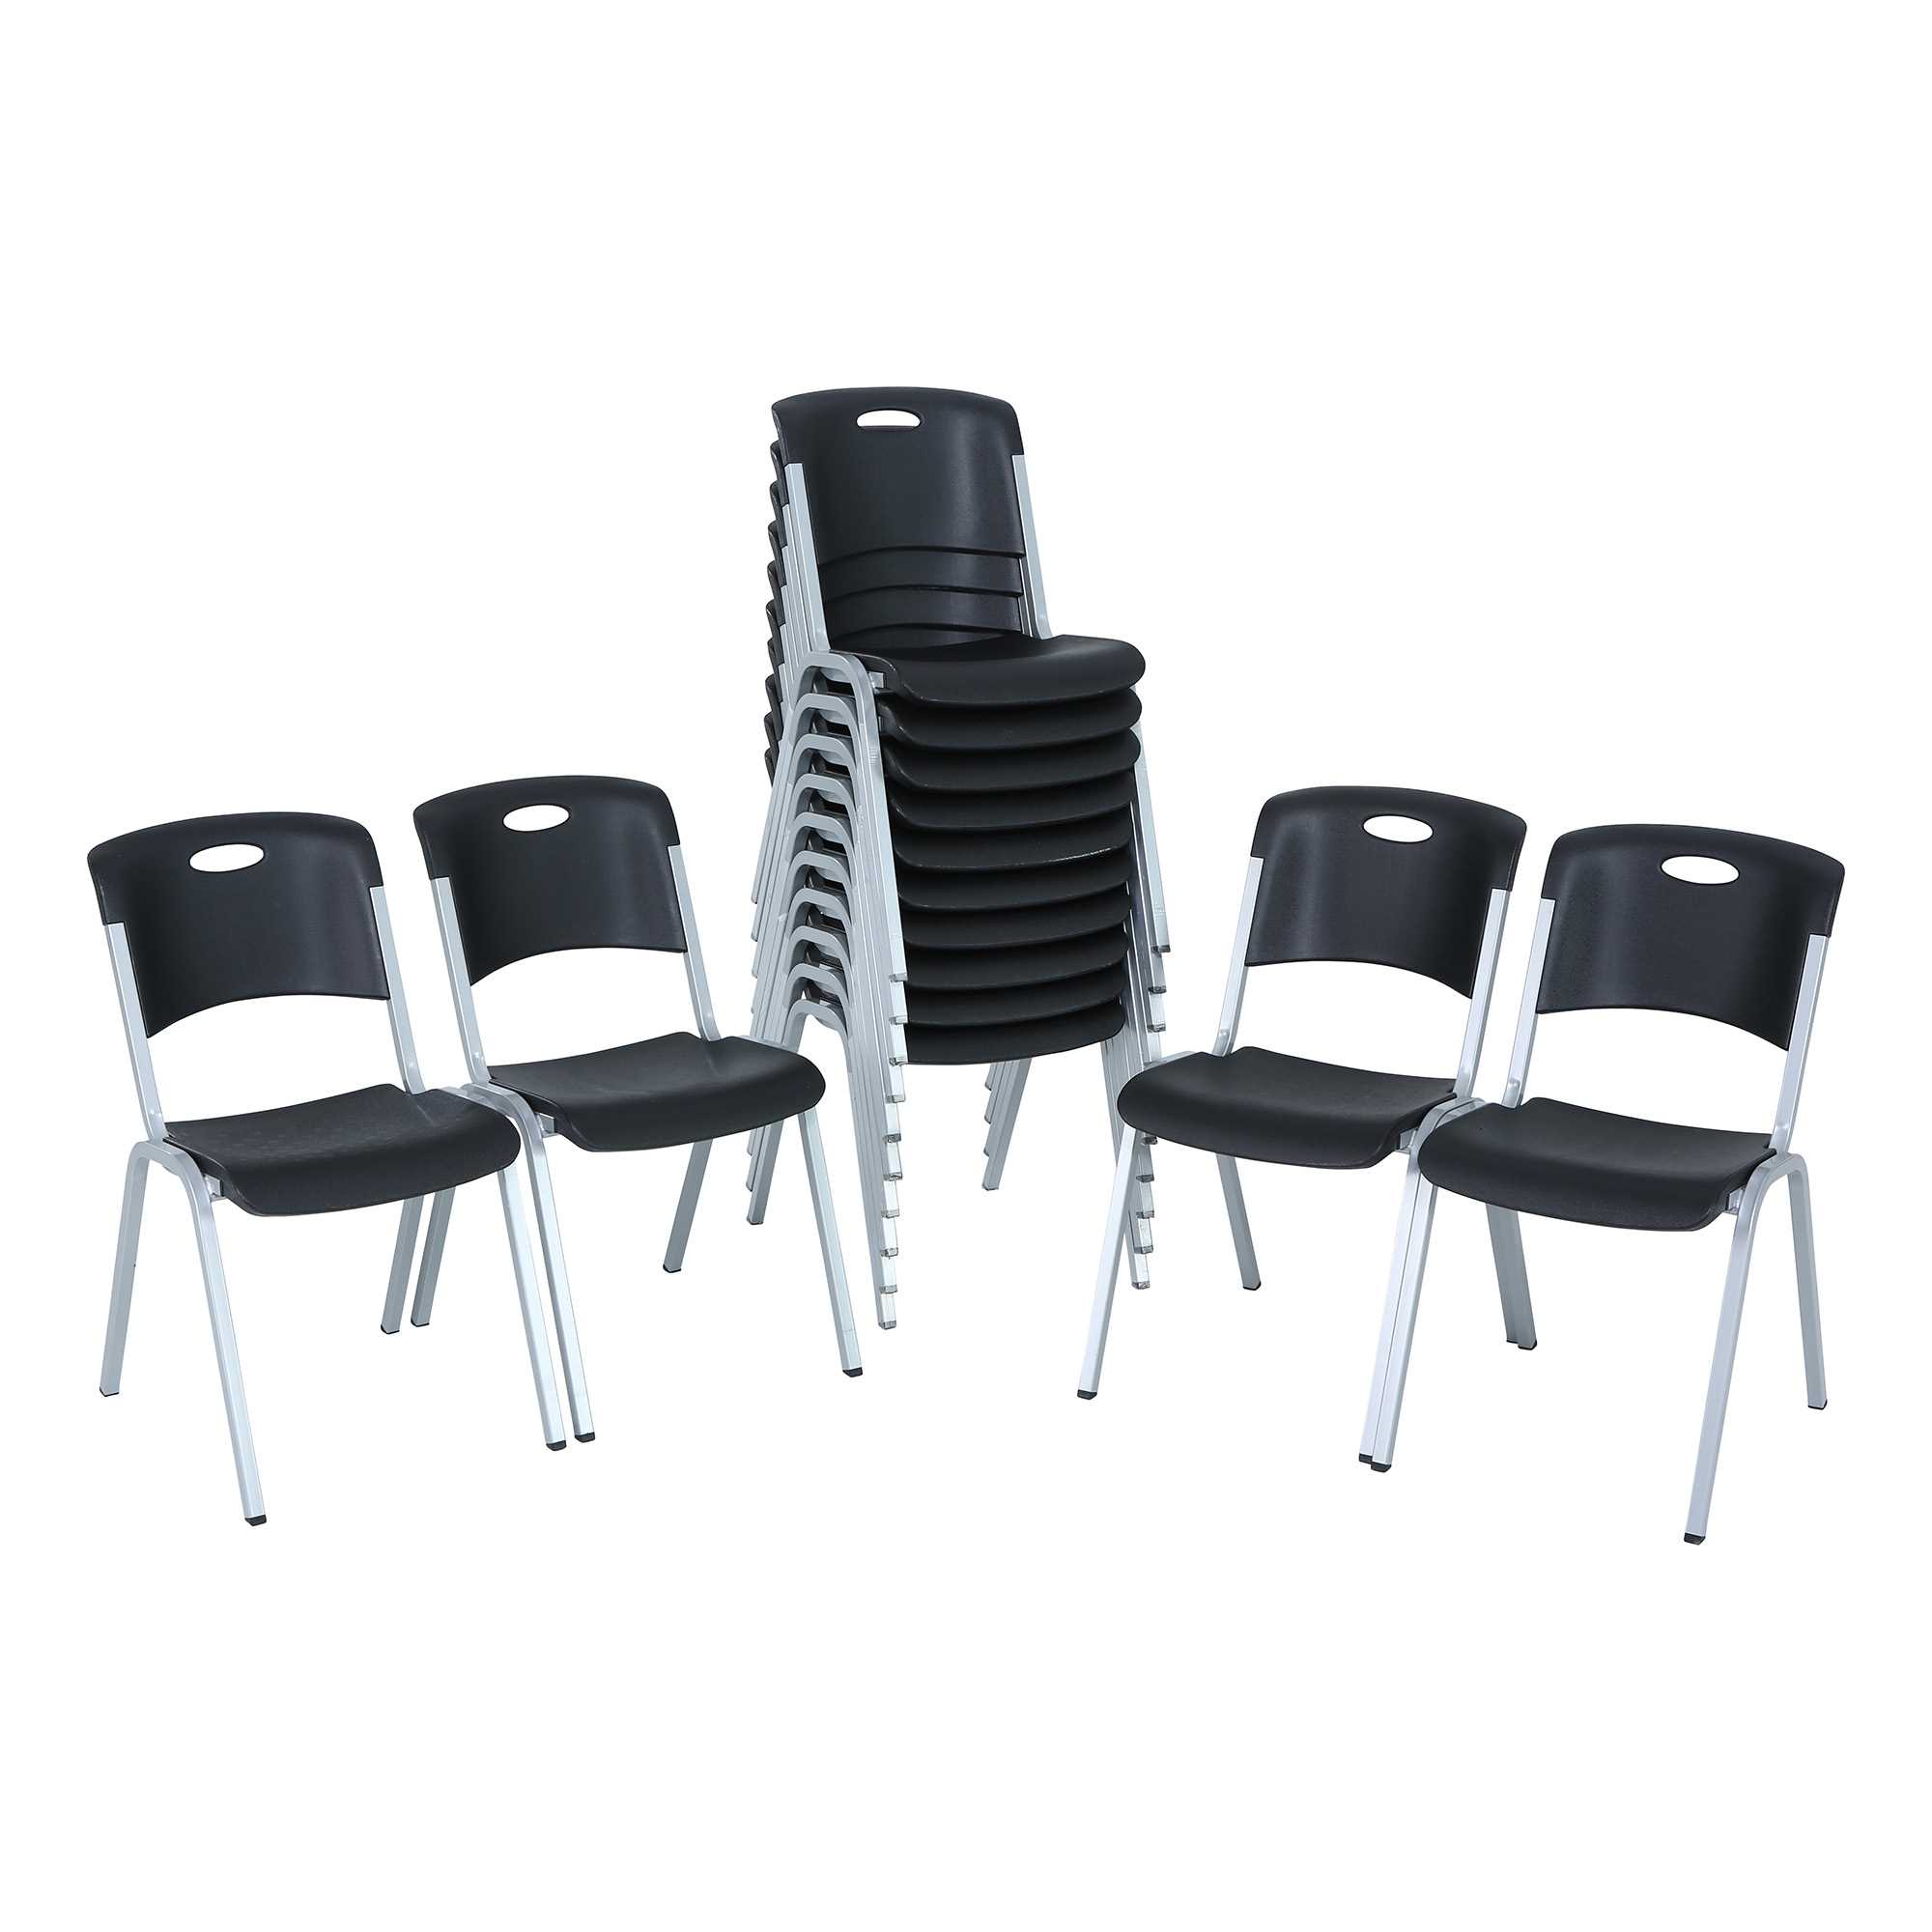 lifetime stacking chairs 2830 black molded seat unusual leather chair premium 80310